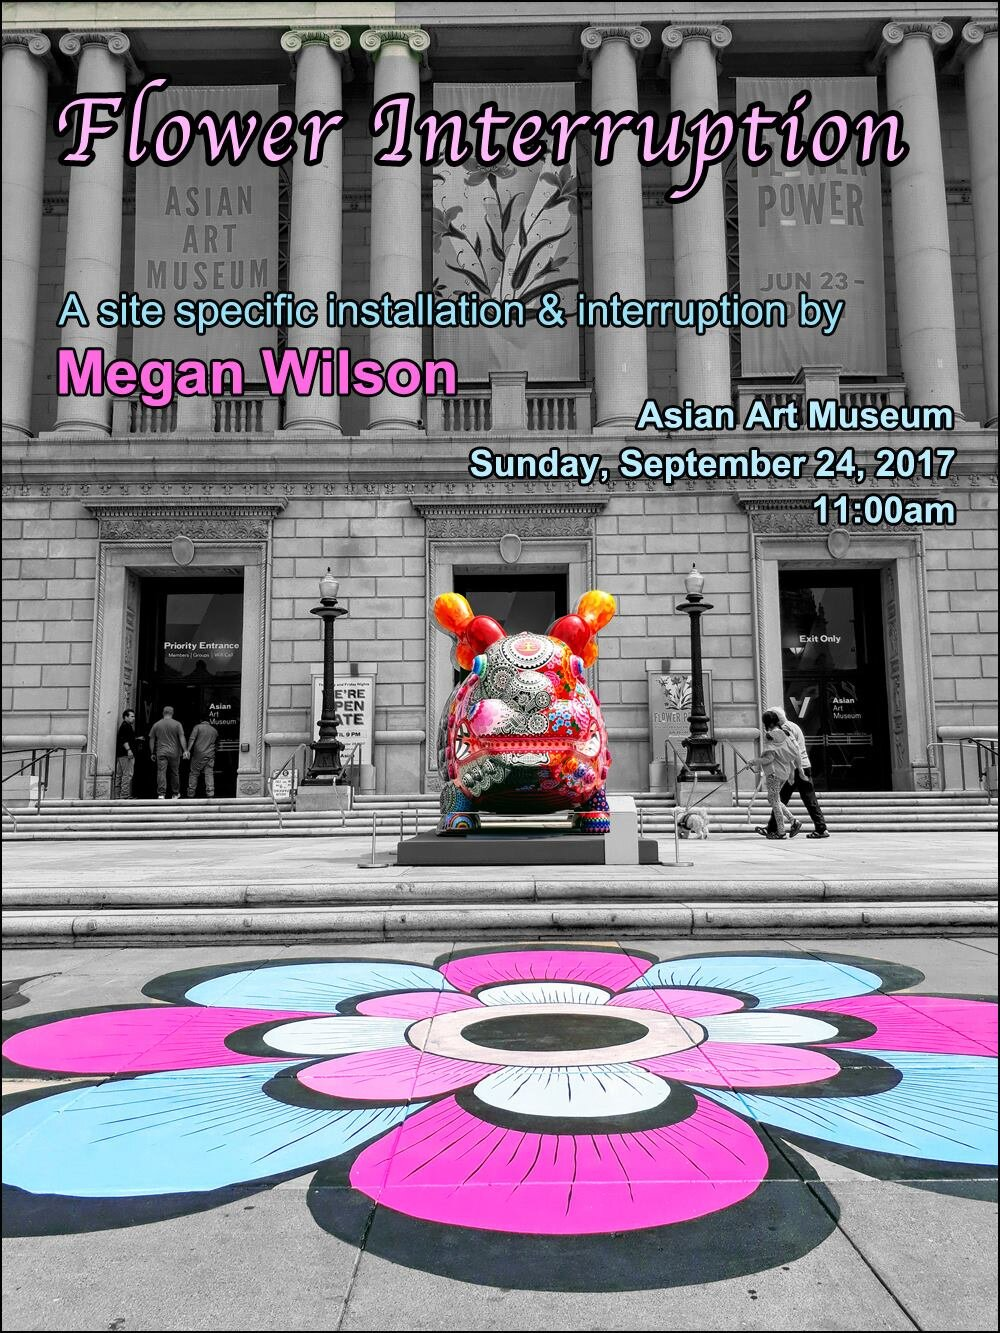 Flower Interruption Performance - Asian Art Museum